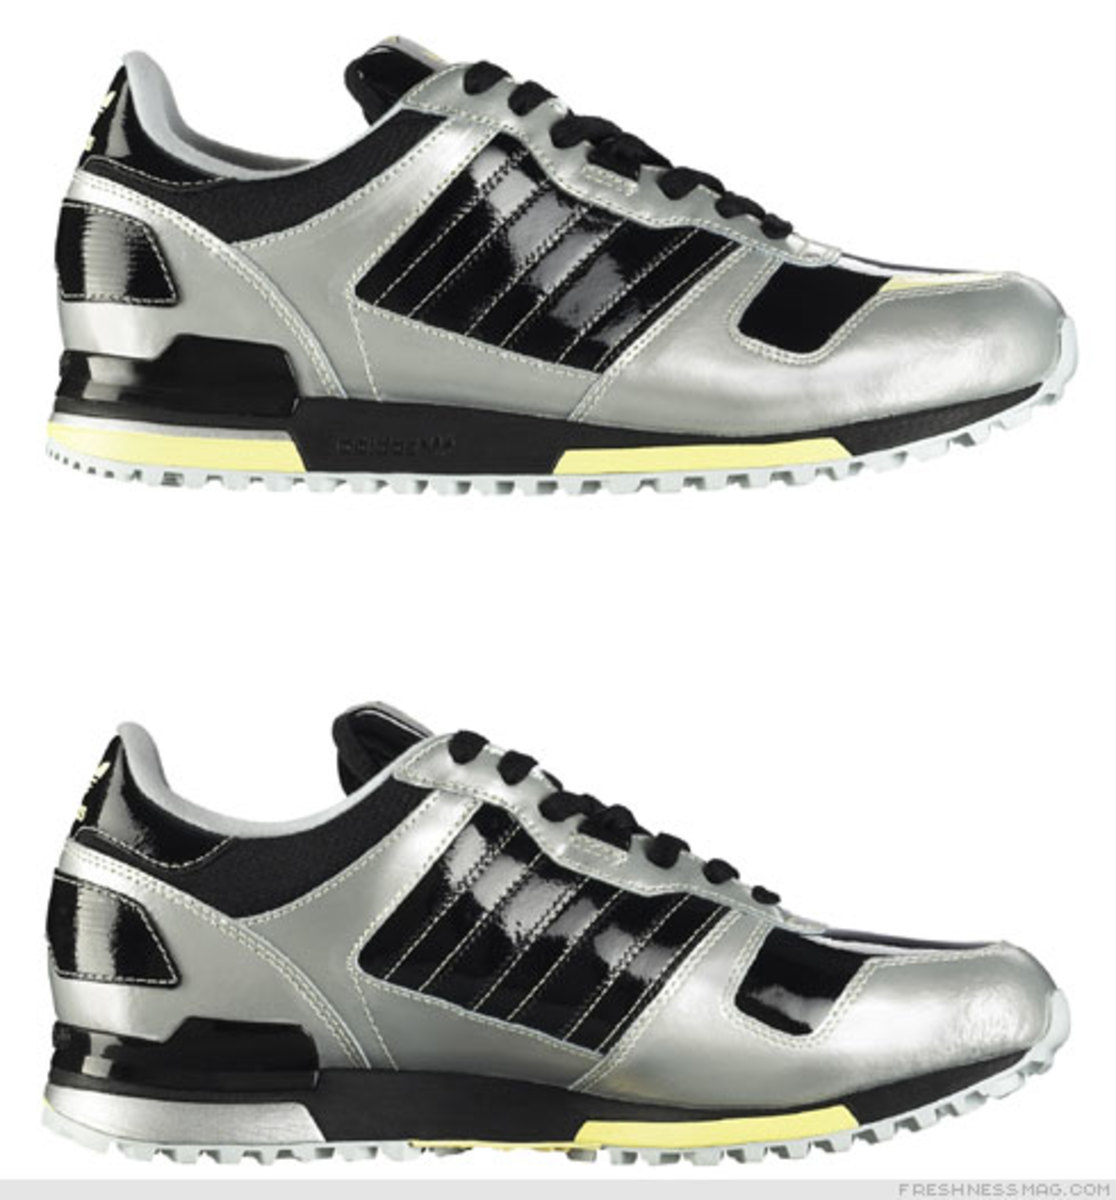 Freshness Feature: Adidas ZX Family - Patent Pack - 9